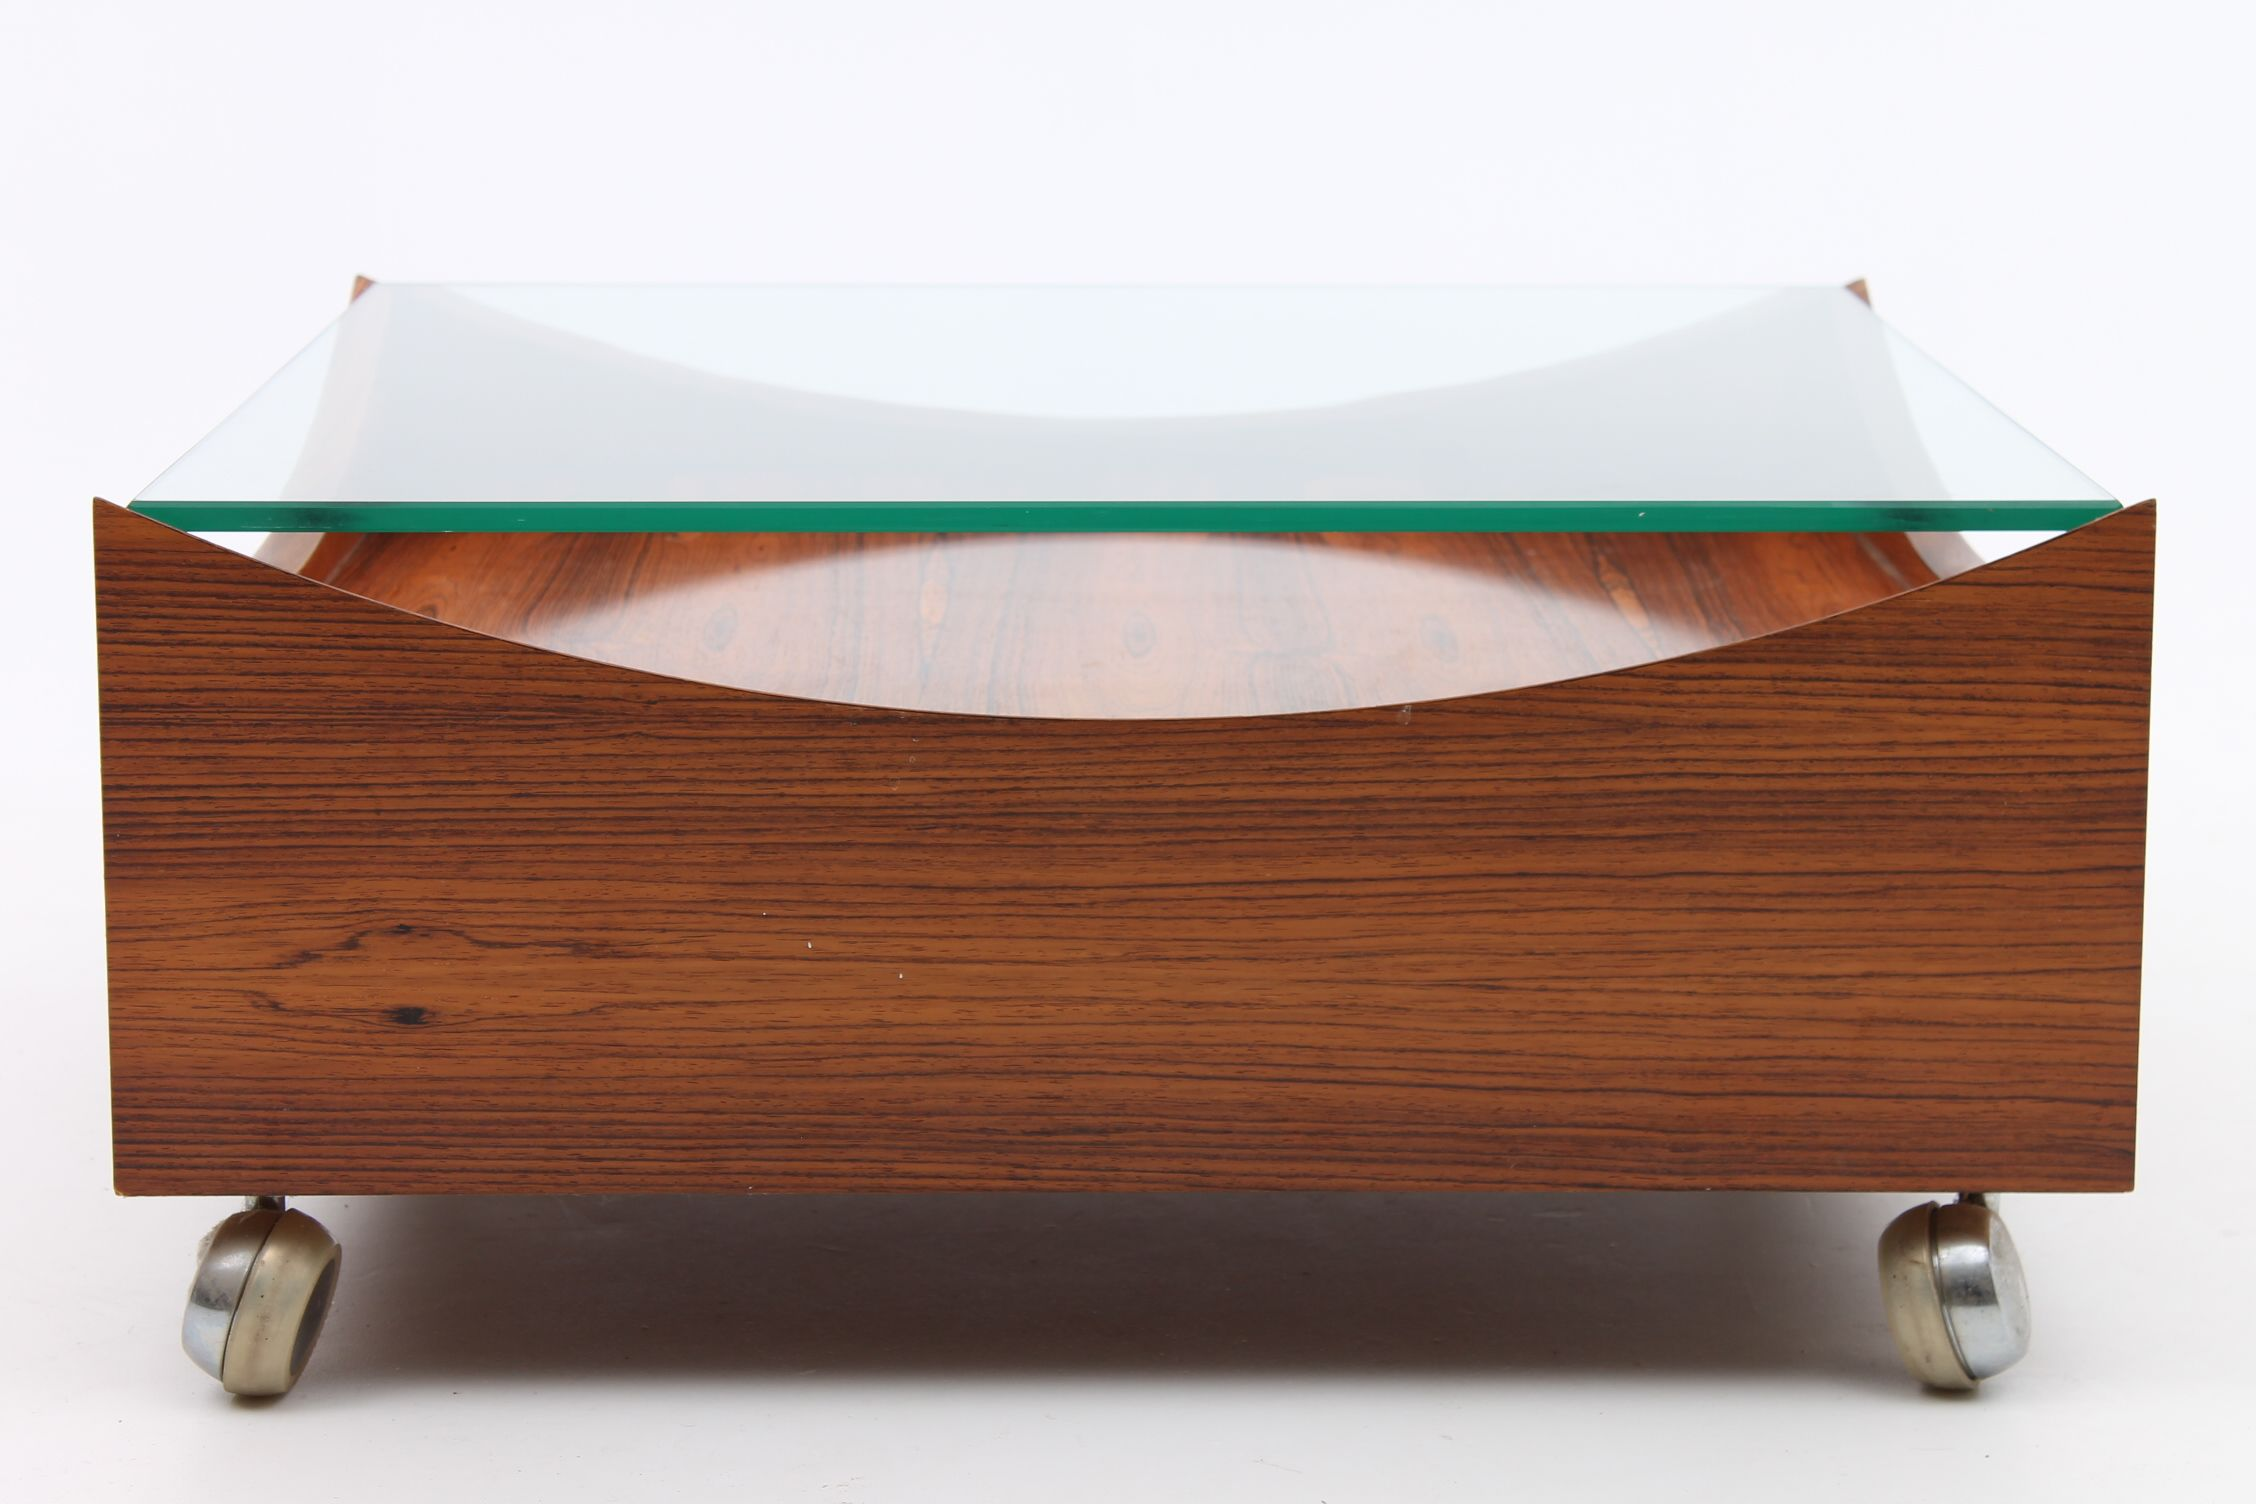 Low Coffee Table In Rosewood With Wheels And Glass Top Designed By Henry W Klein And Manufactured By Bramin Mobler Denmark Www Remodern Dk Mobler [ 1504 x 2256 Pixel ]